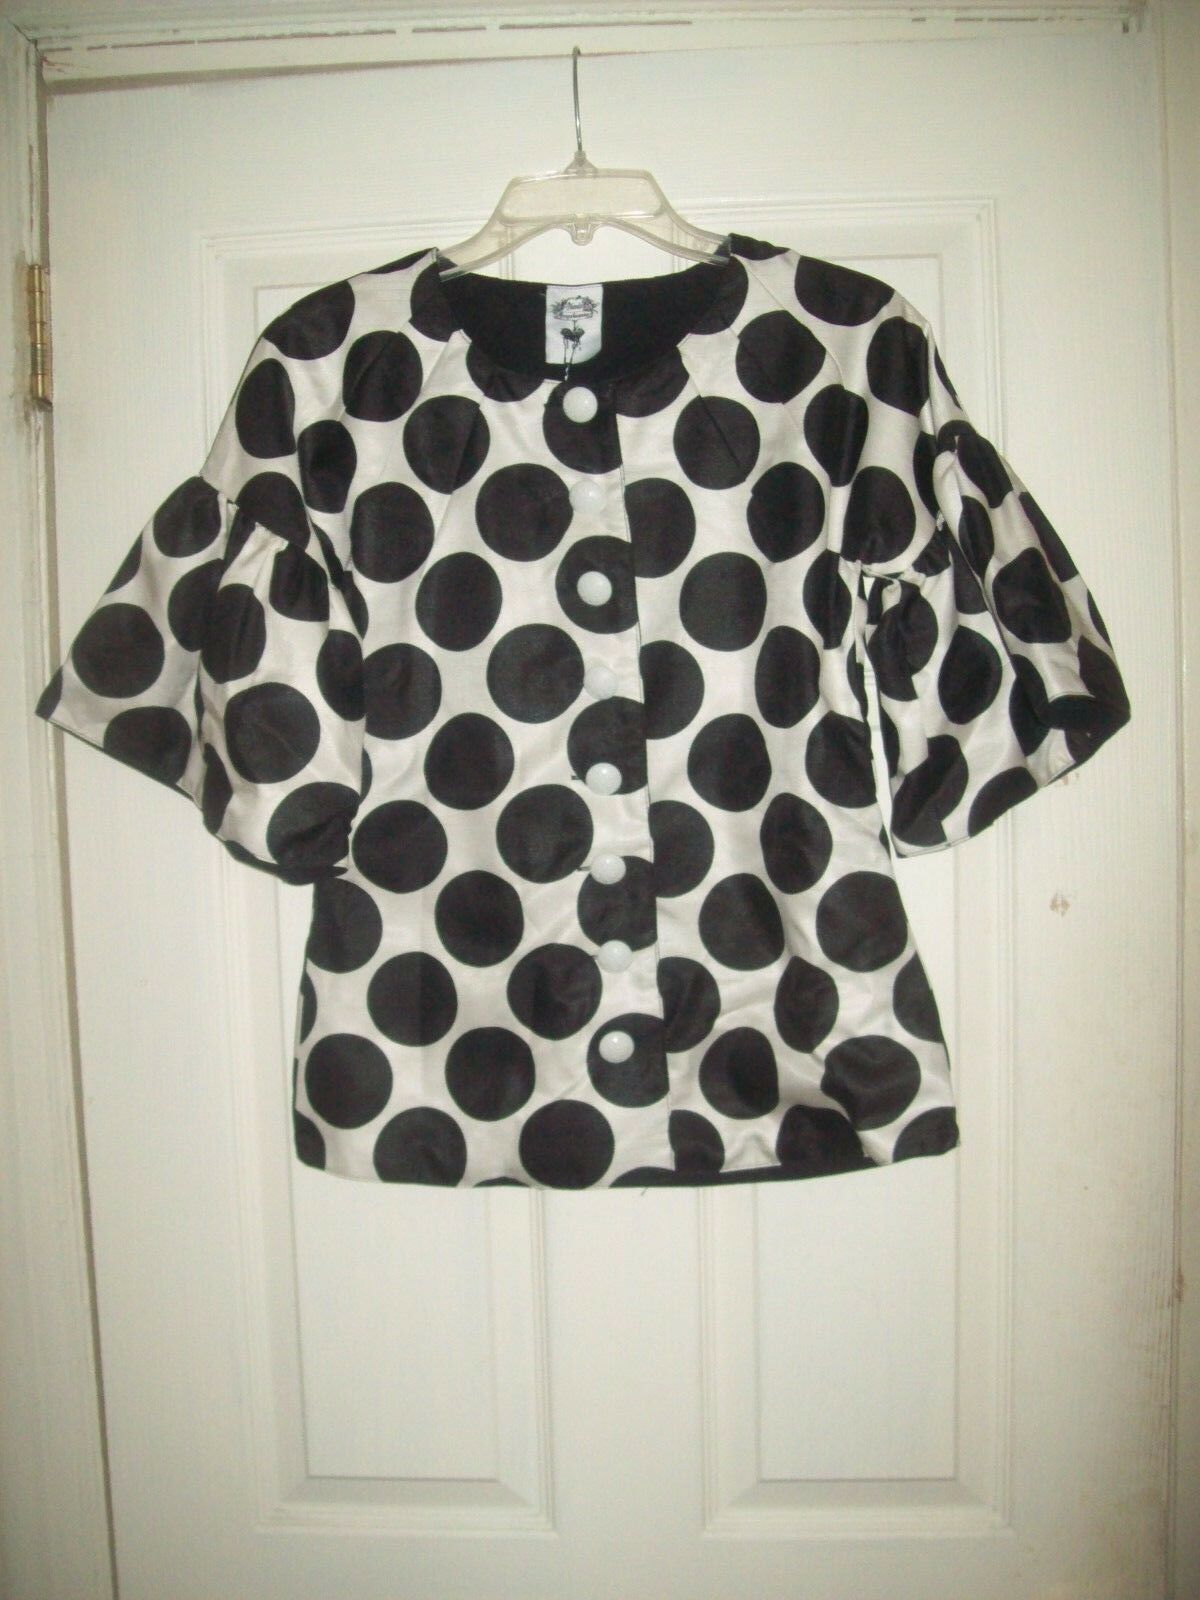 Nuvula Blouse XS NWT New Weiß schwarz Polka Dot Ruffle Sleeve Jacket Unique